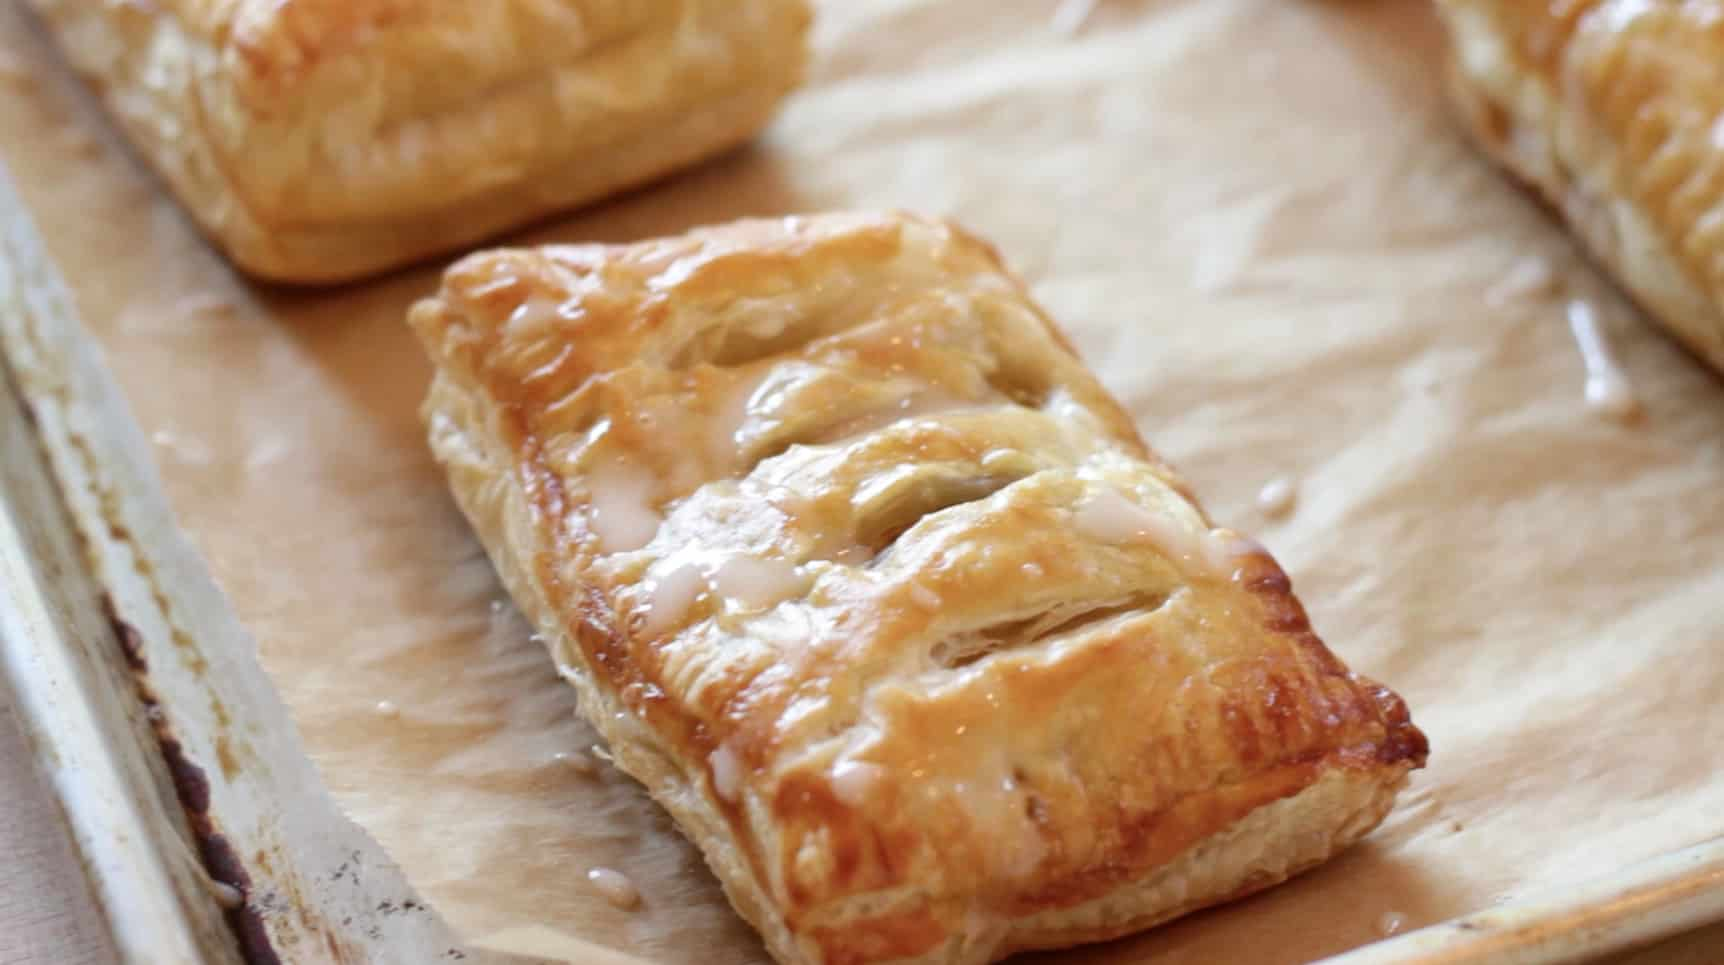 Apple Cinnamon Pastries